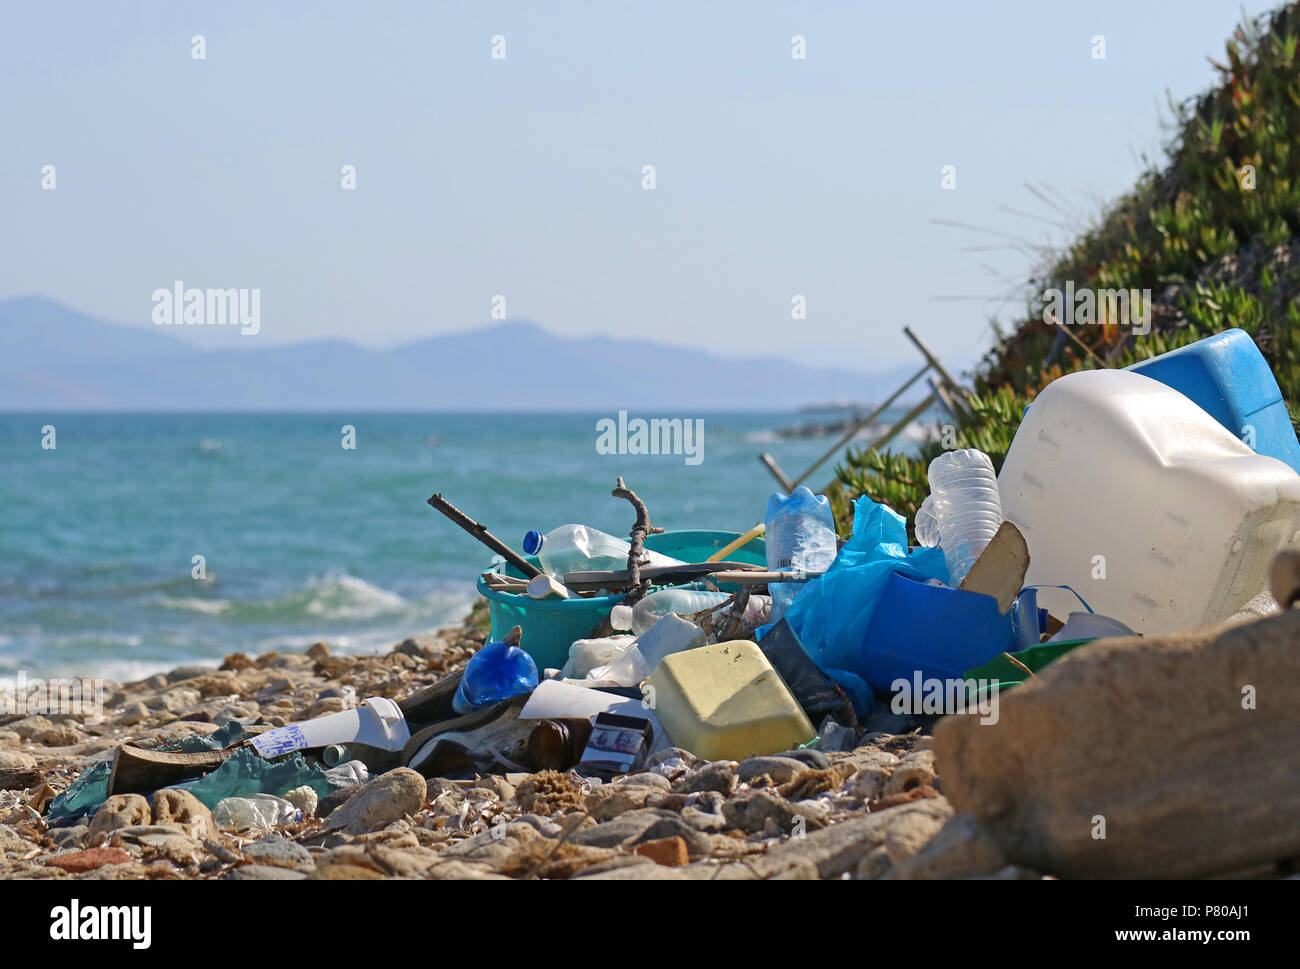 plastic garbage and wastes on the beach with the sea and an island on background Stock Photo